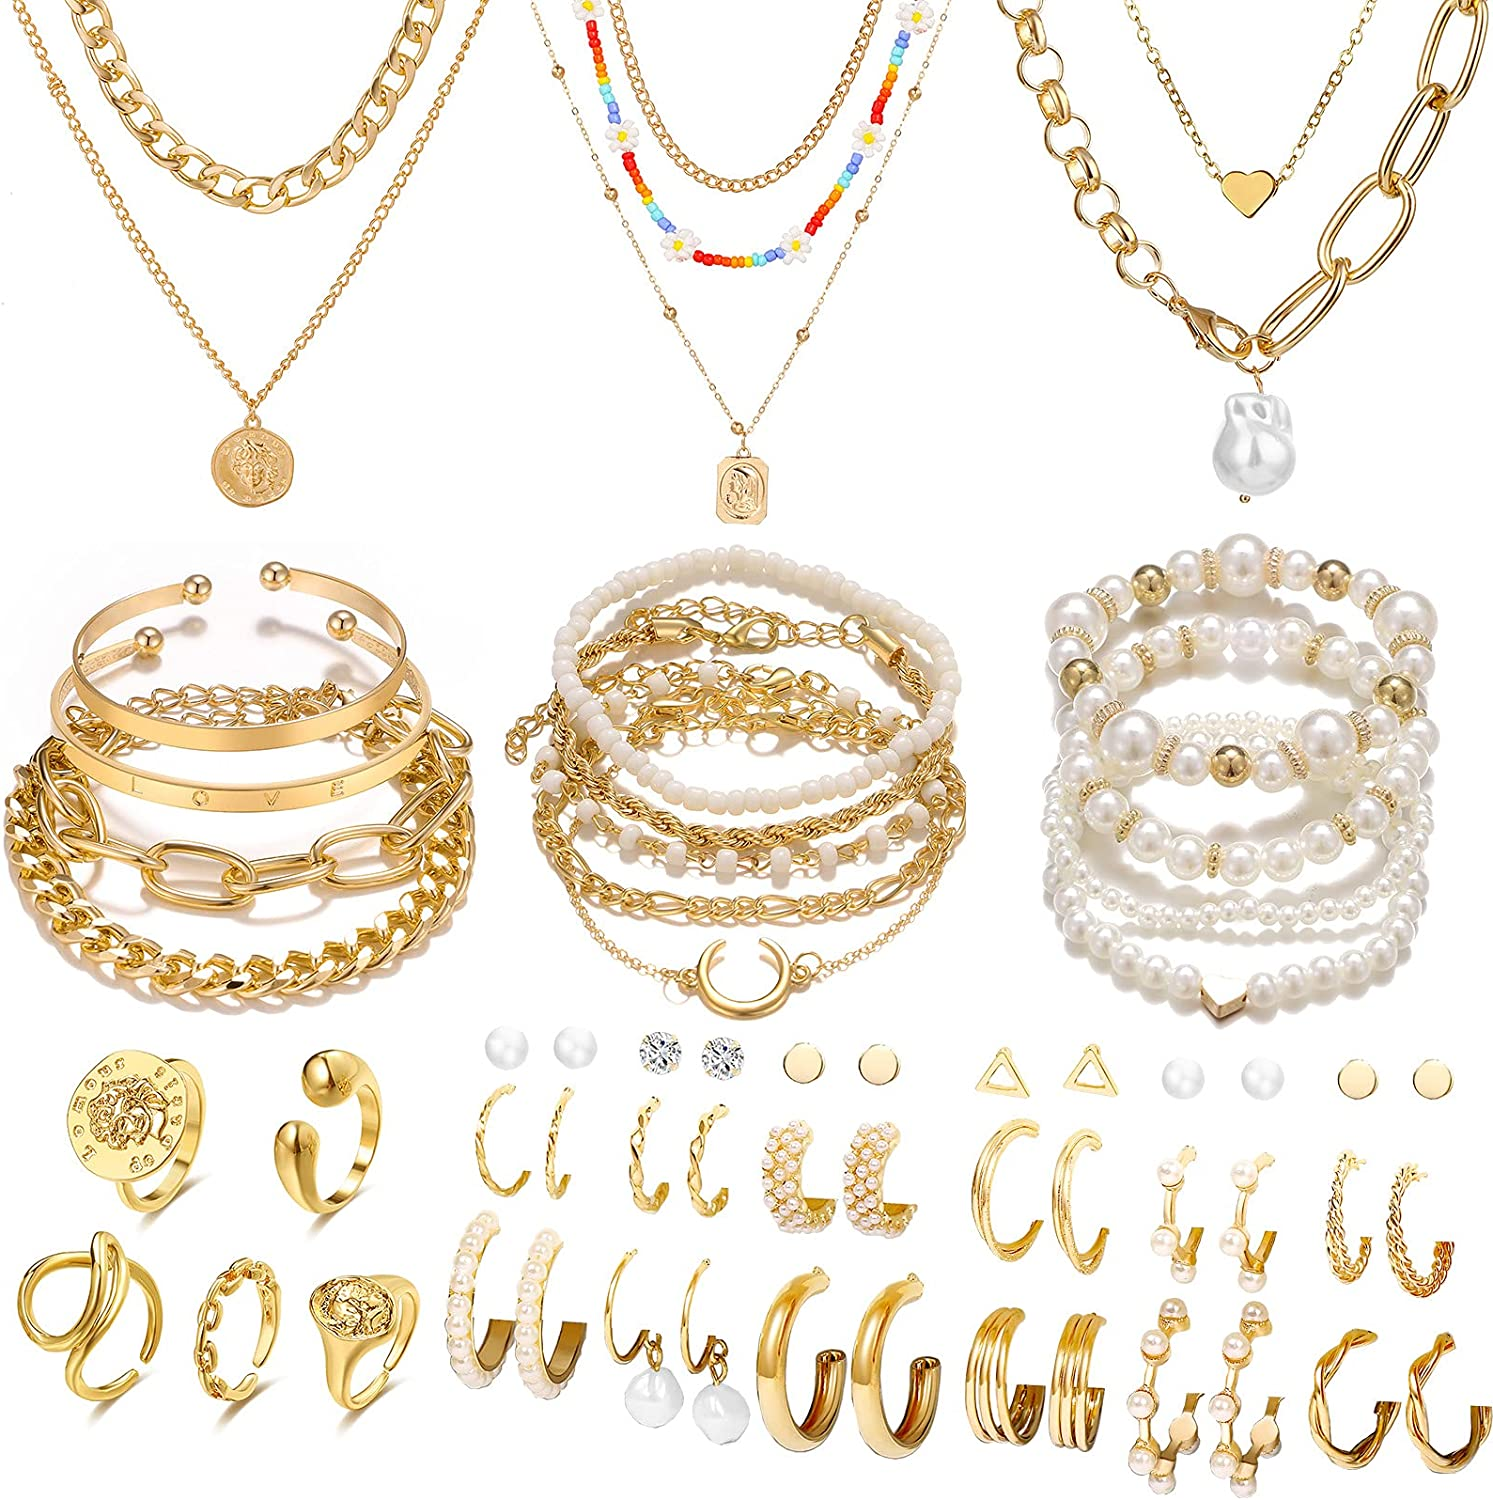 IFKM 41 PCS Gold Plated Jewelry Set with 5 PCS Necklace, 13 PCS Bracelet, 18 PCS Hoop Earrings, 5 PCS Knuckle Rings for Women Girls Valentine Anniversary Birthday Friendship Gift